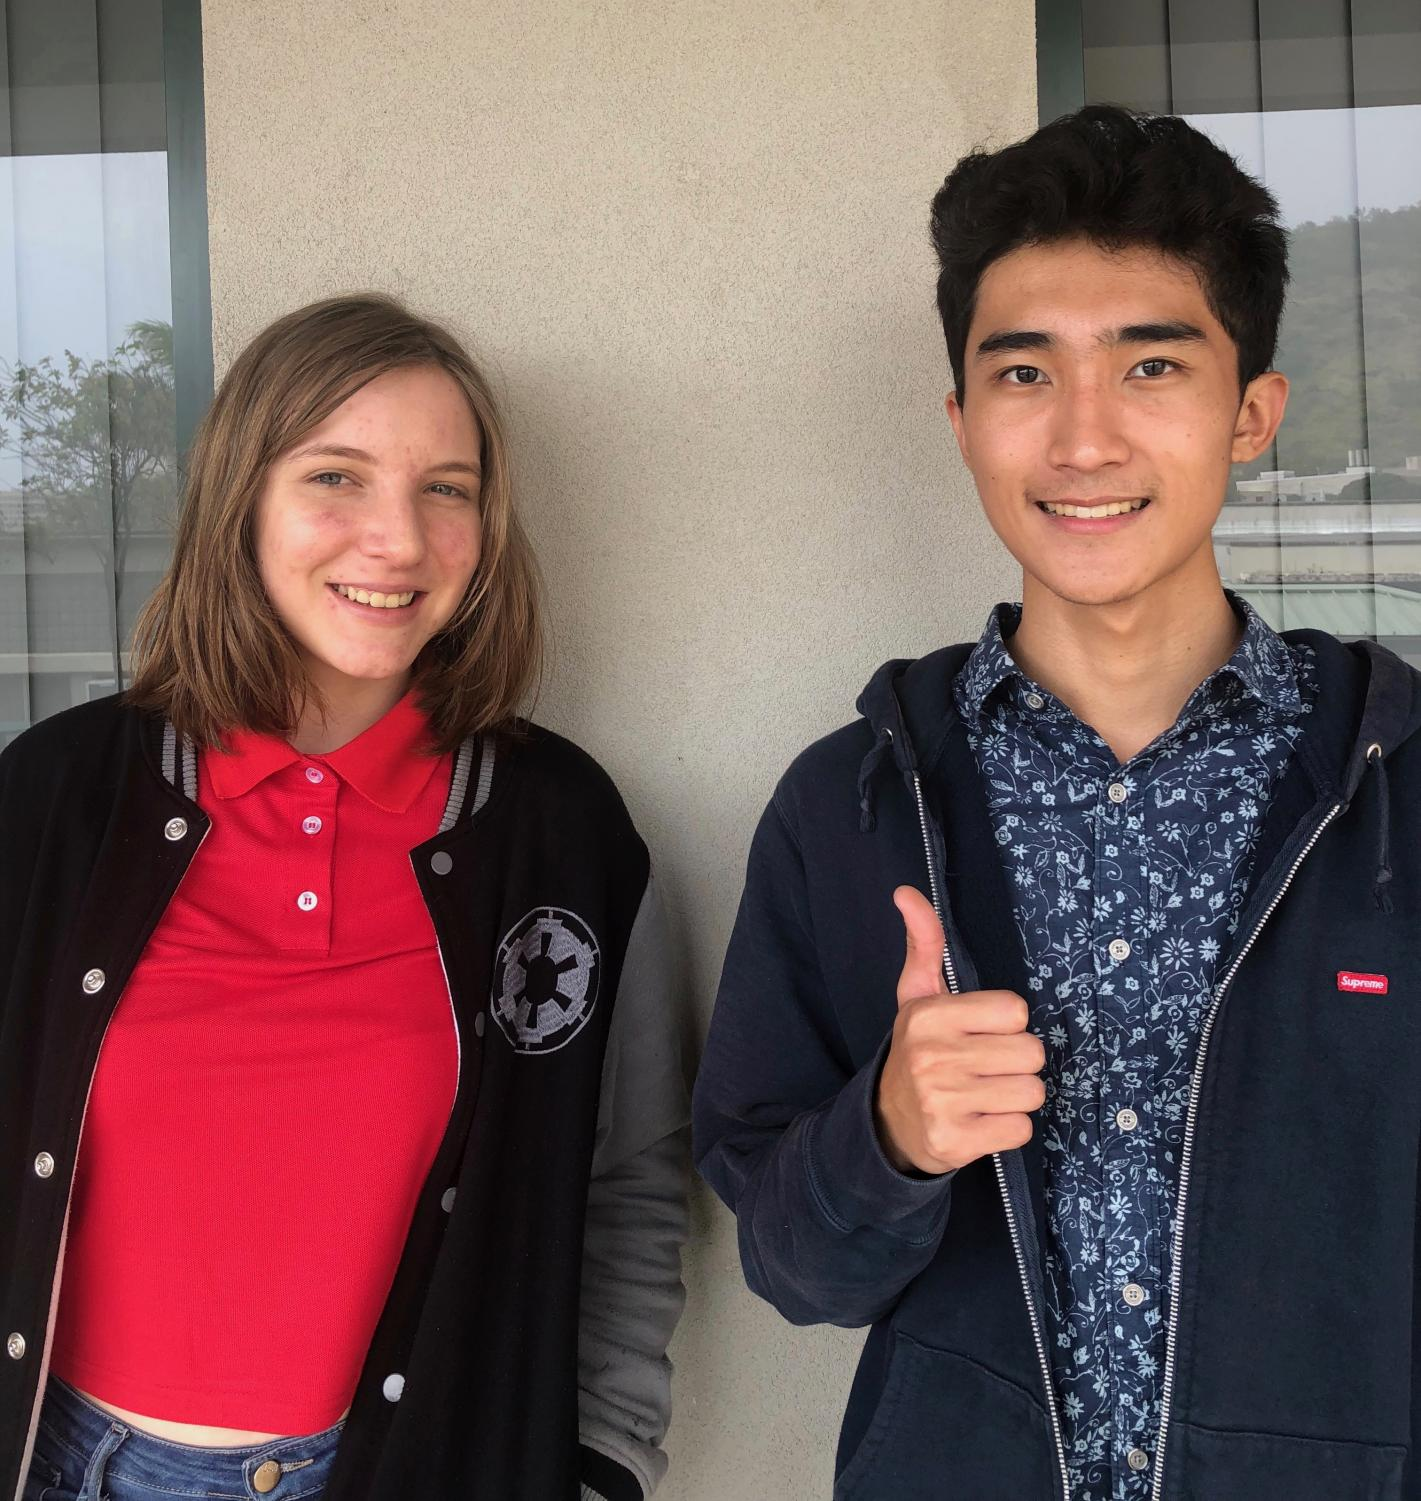 National Merit Scholarship semifinalists Jessie Garbiel and Connor Mukai give advice for preparing for the SAT.